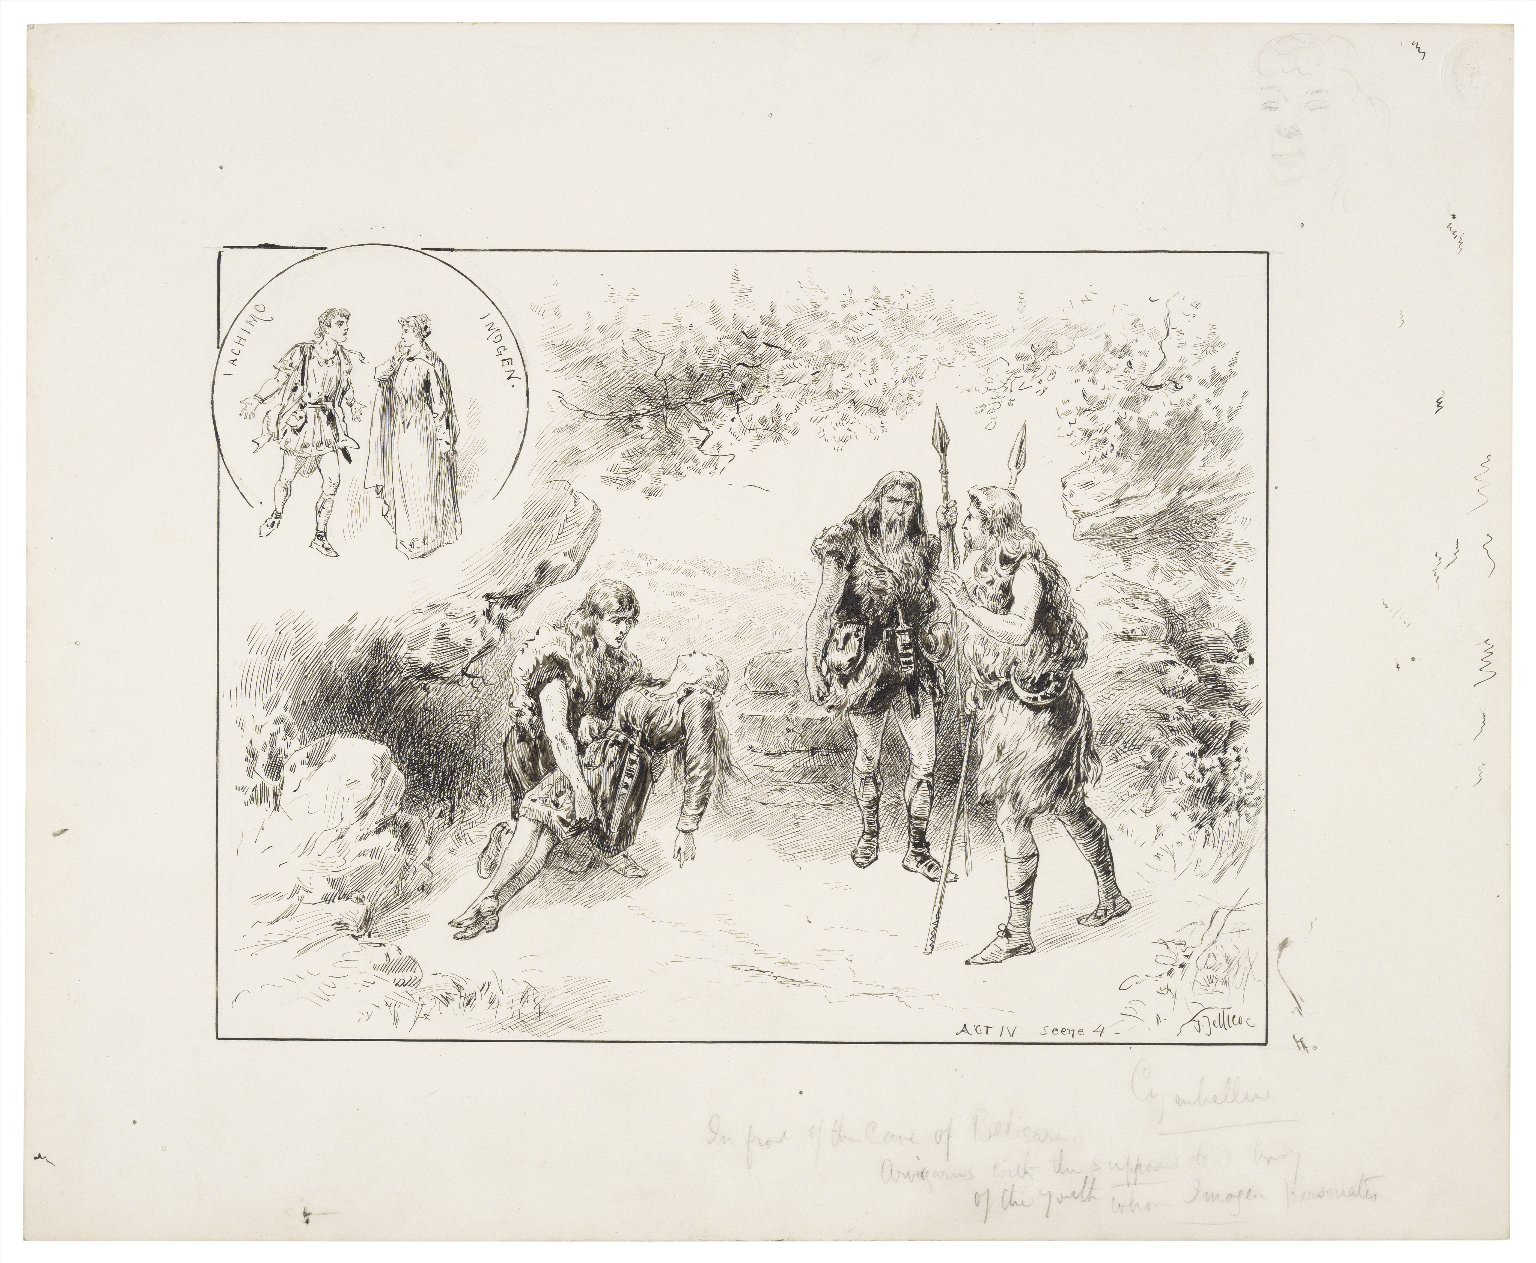 Cymbeline, IV, 4, by the Irving A.D.C., February 11, 1893 [graphic] / J. Jellicoe.